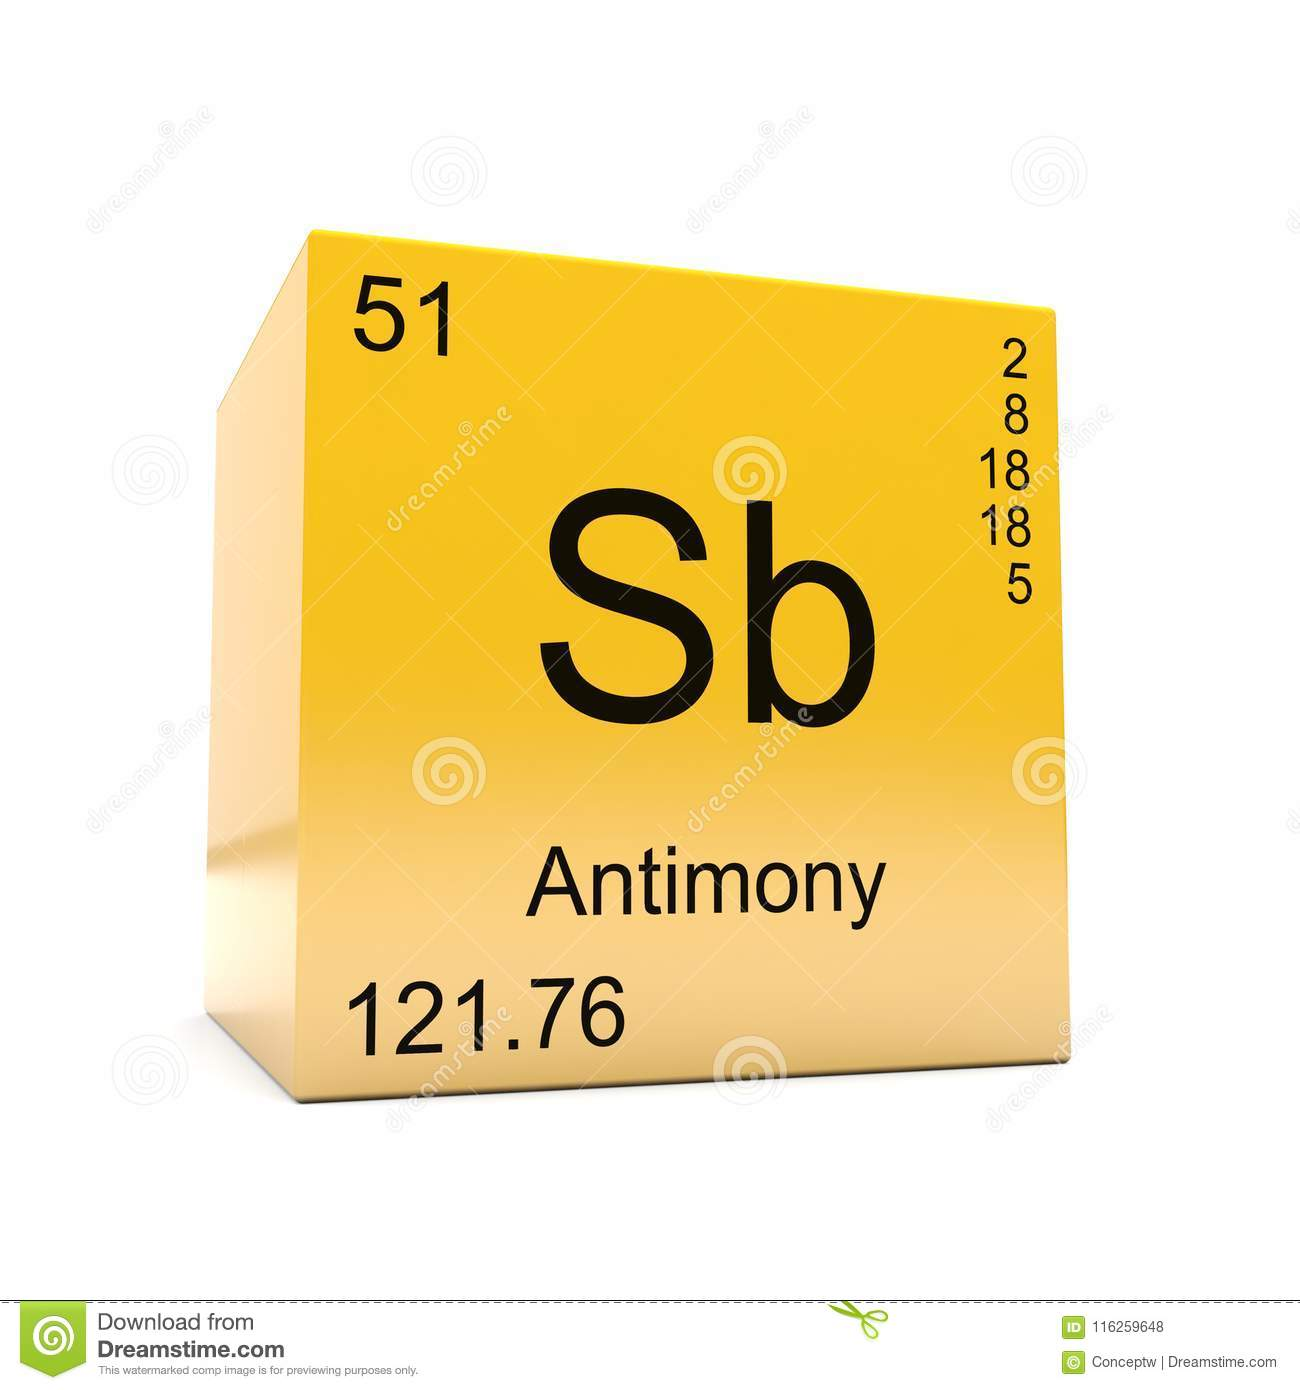 Antimony Chemical Element Symbol From Periodic Table Stock